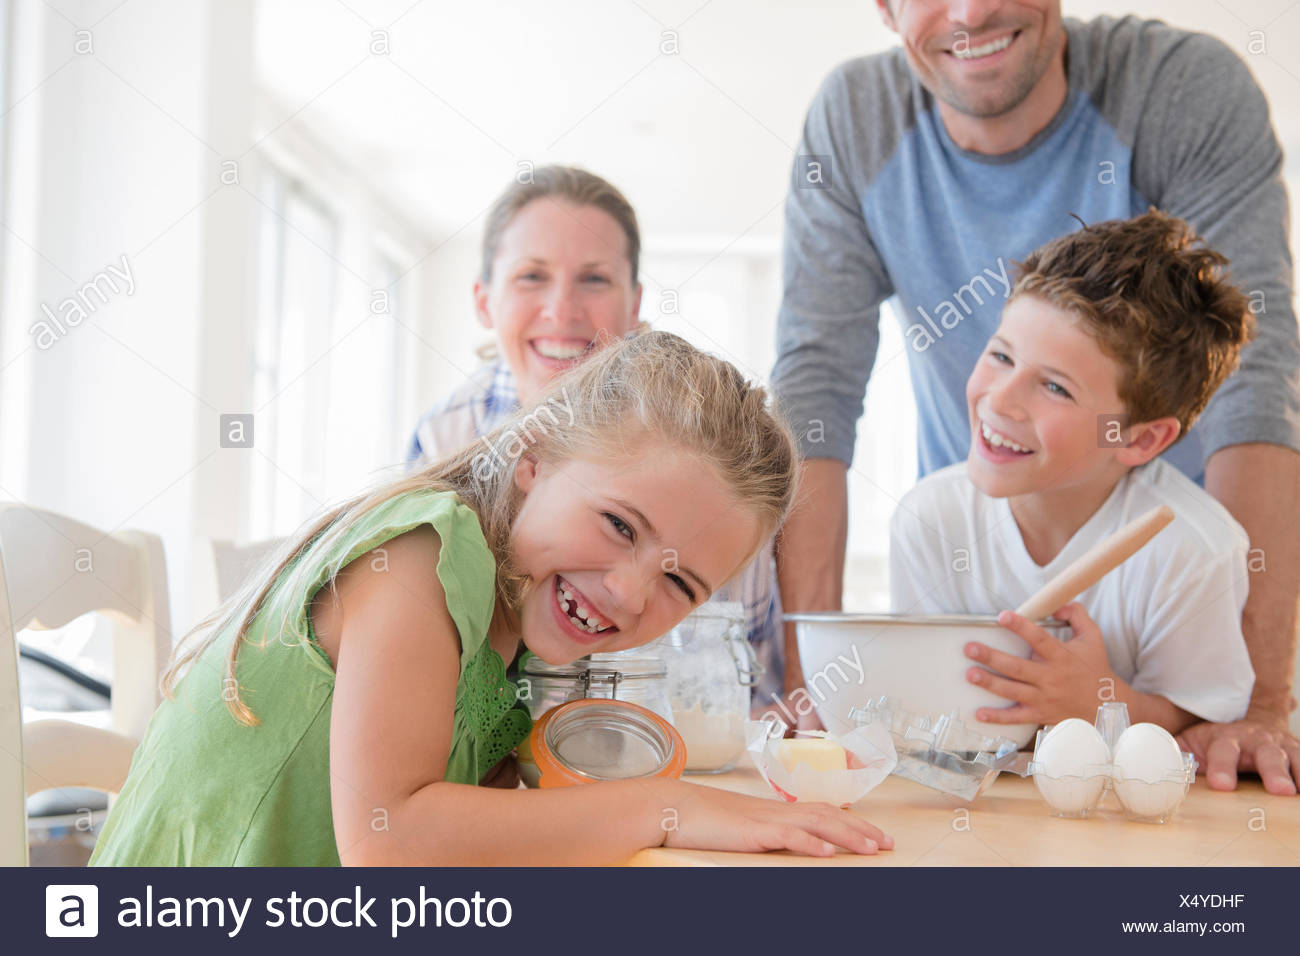 Family with two children (6-7, 8-9) preparing food, laughing - Stock Image